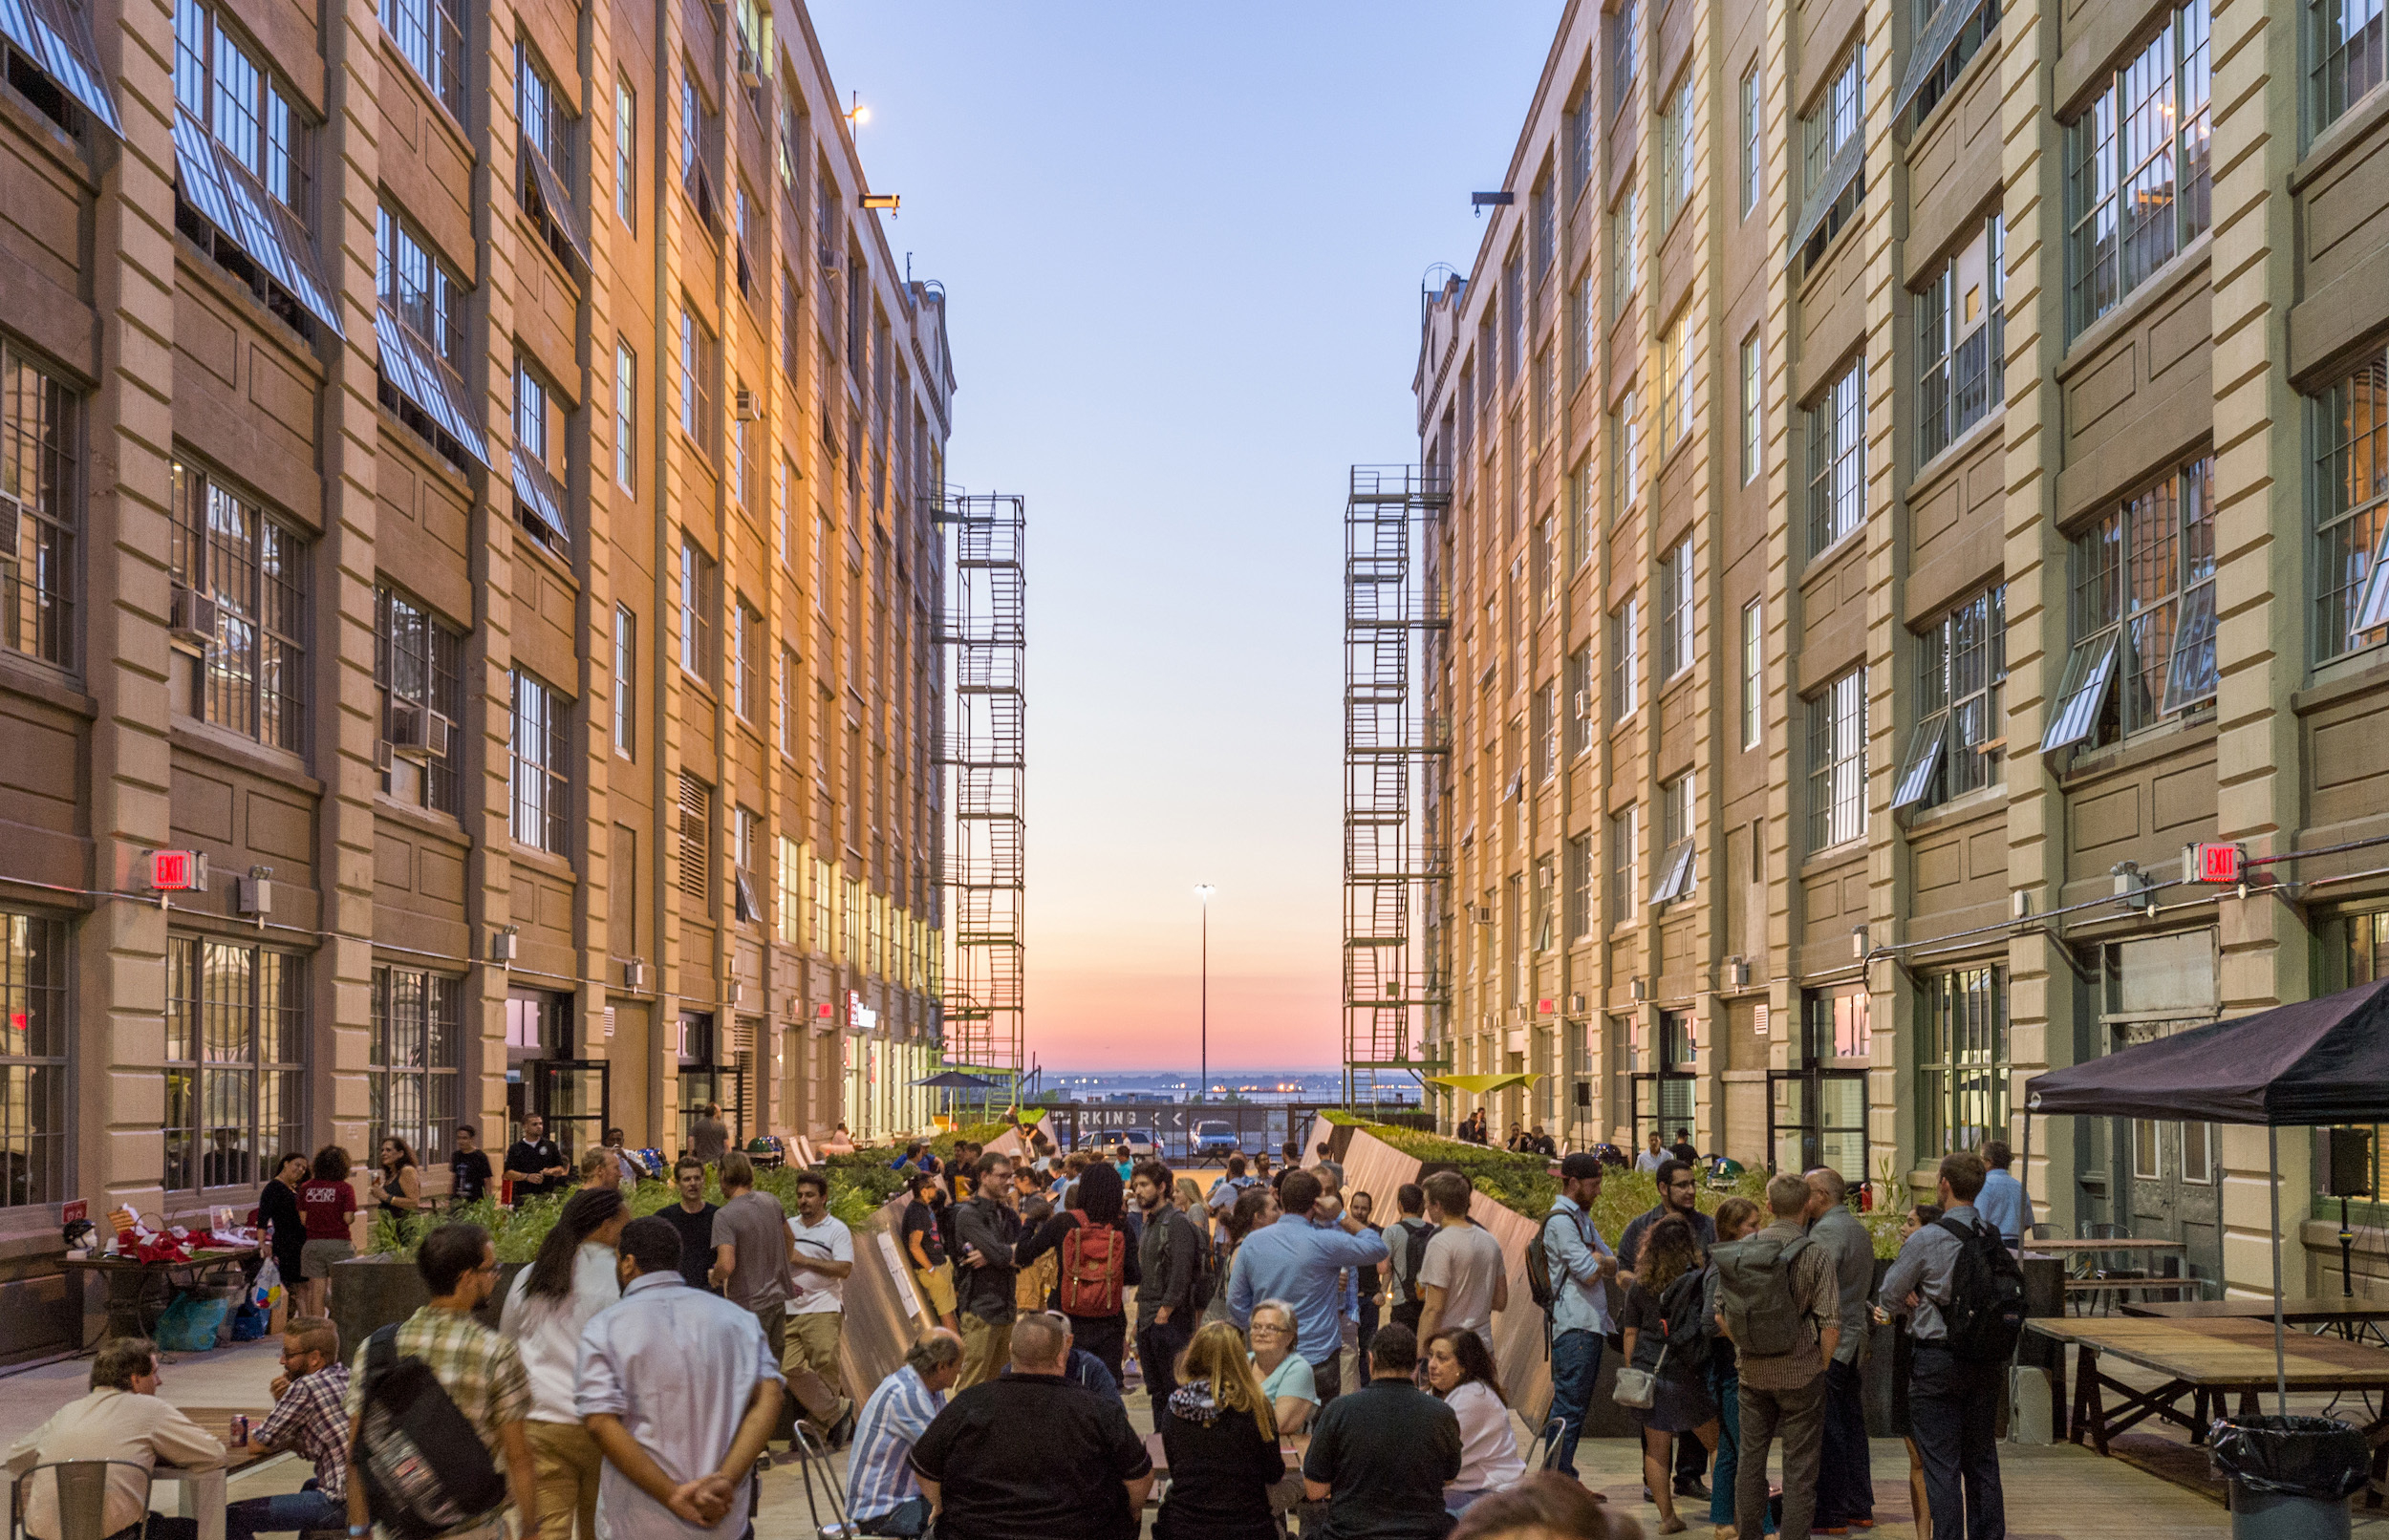 Industry City courtyard at dusk with attendees at an event